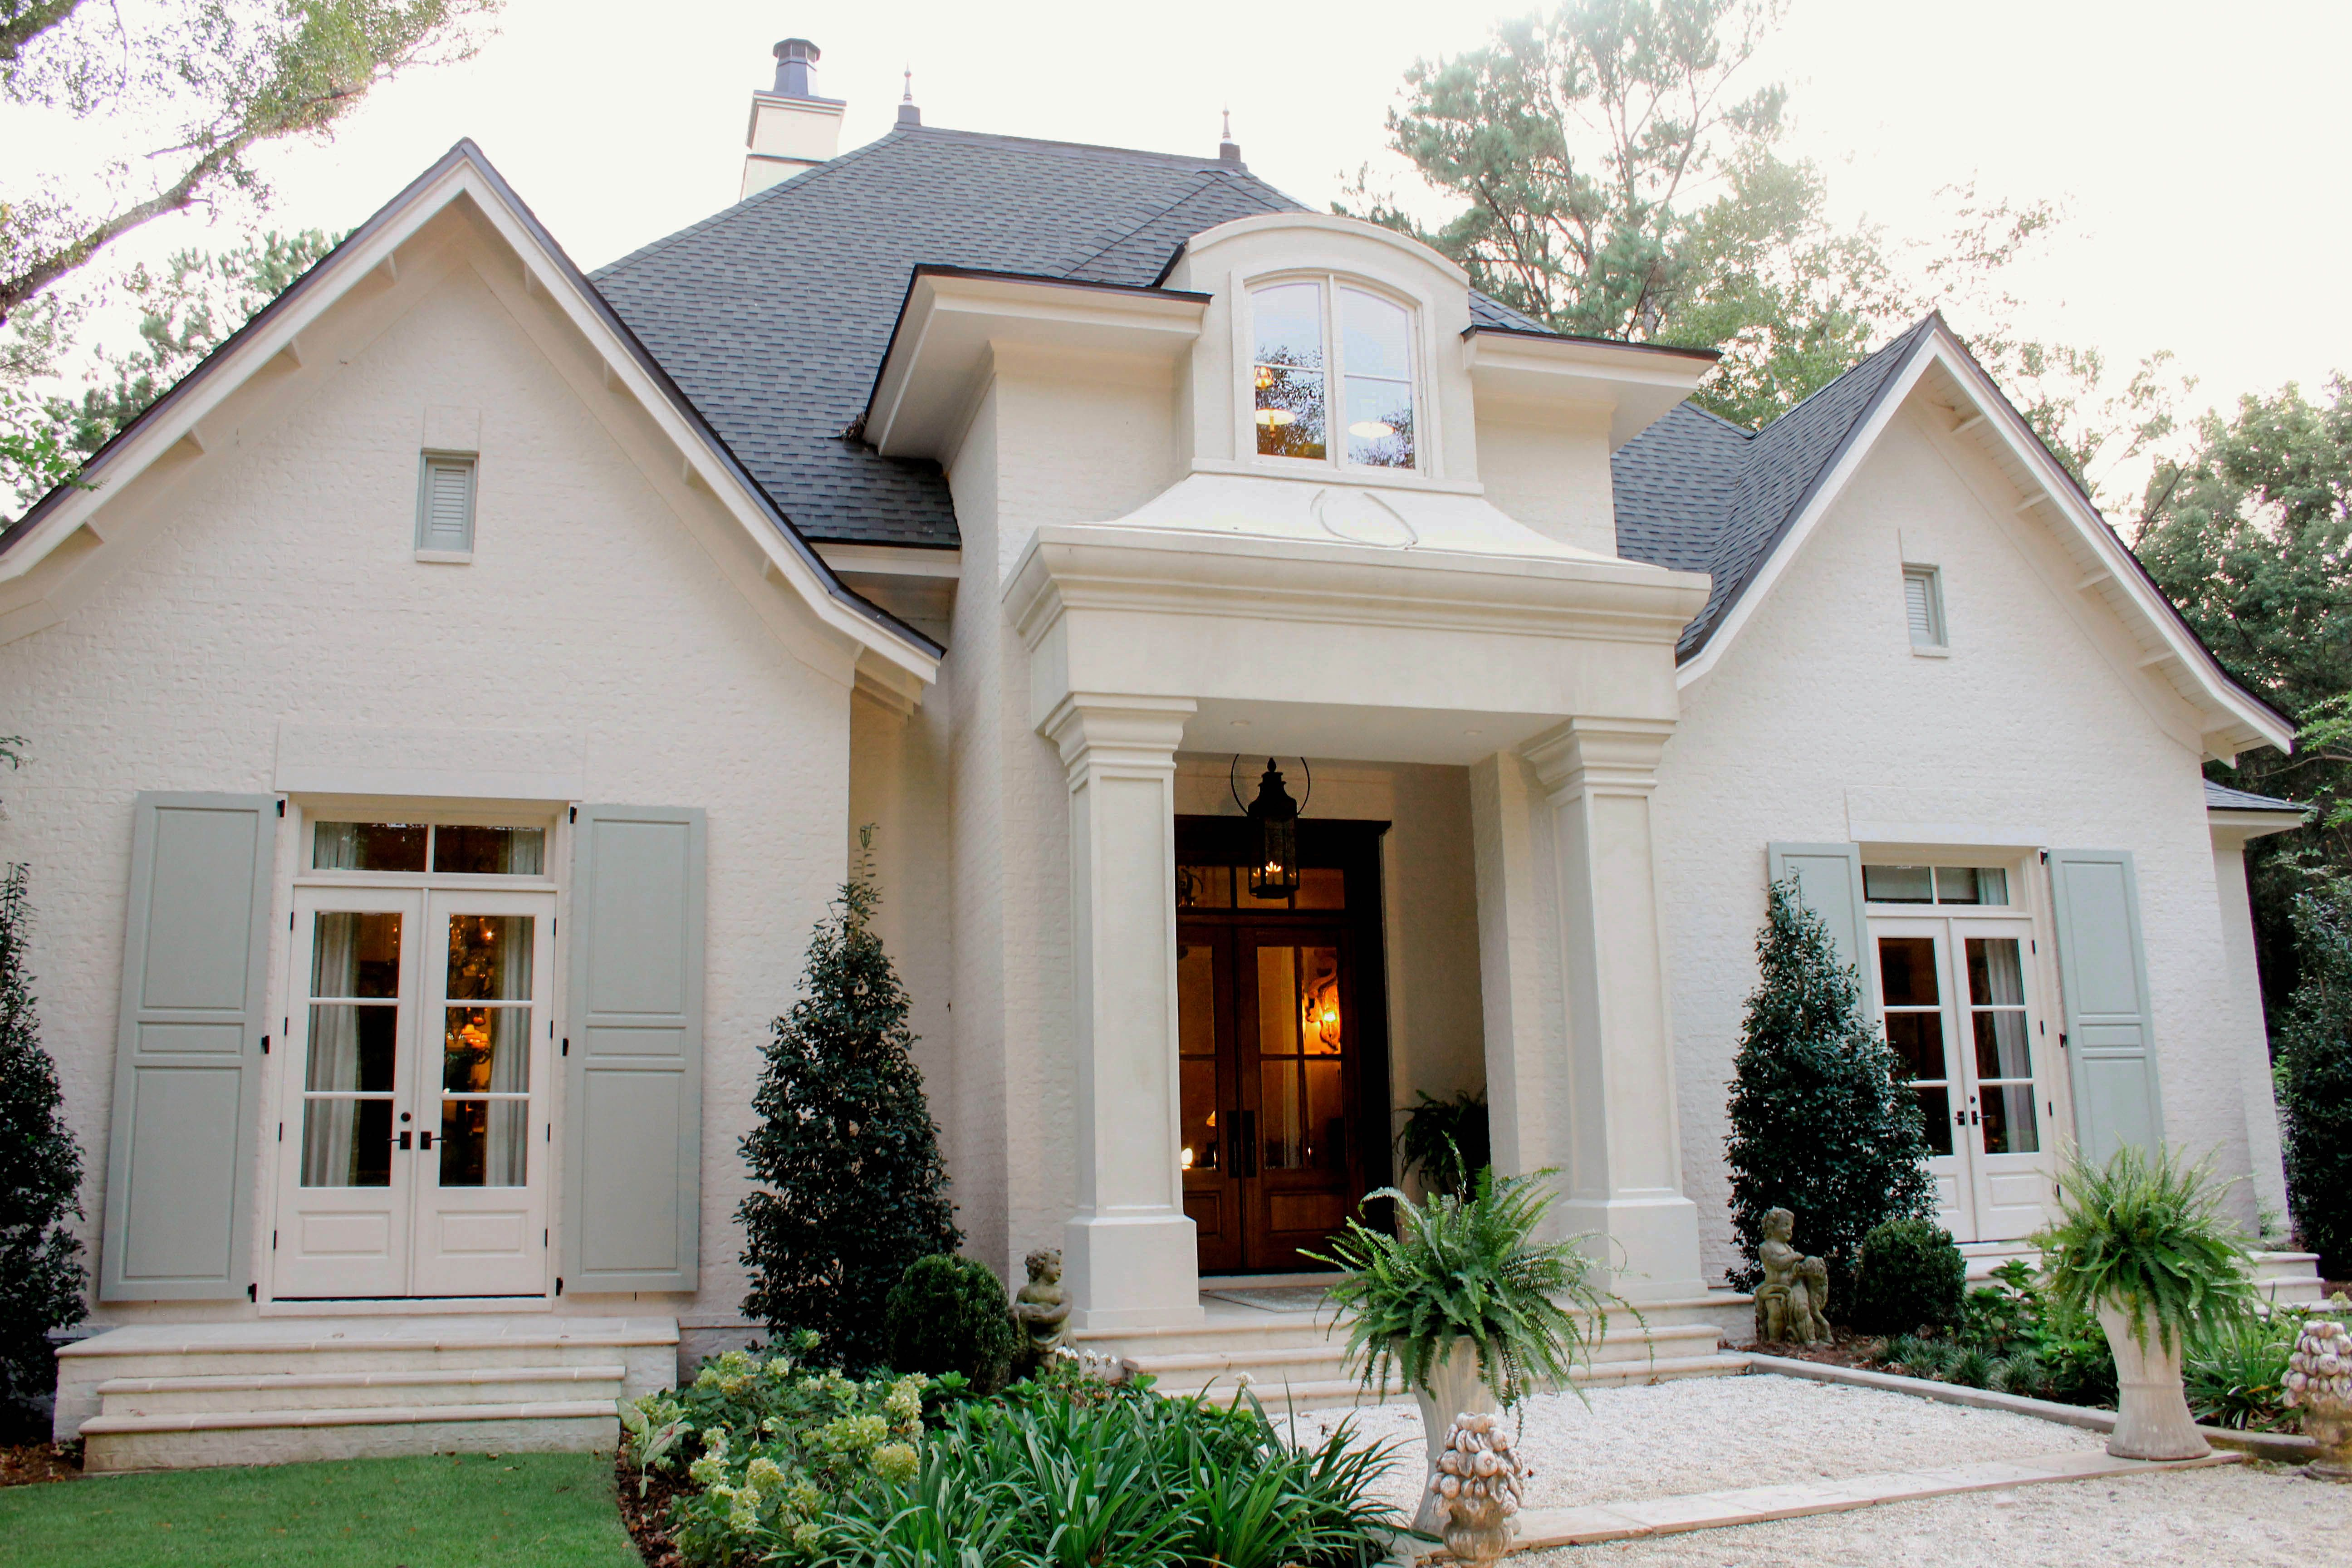 Charming French Country Cottage Designed By Bob Chatham Brick Exterior House French Cottage Exterior White Stucco House